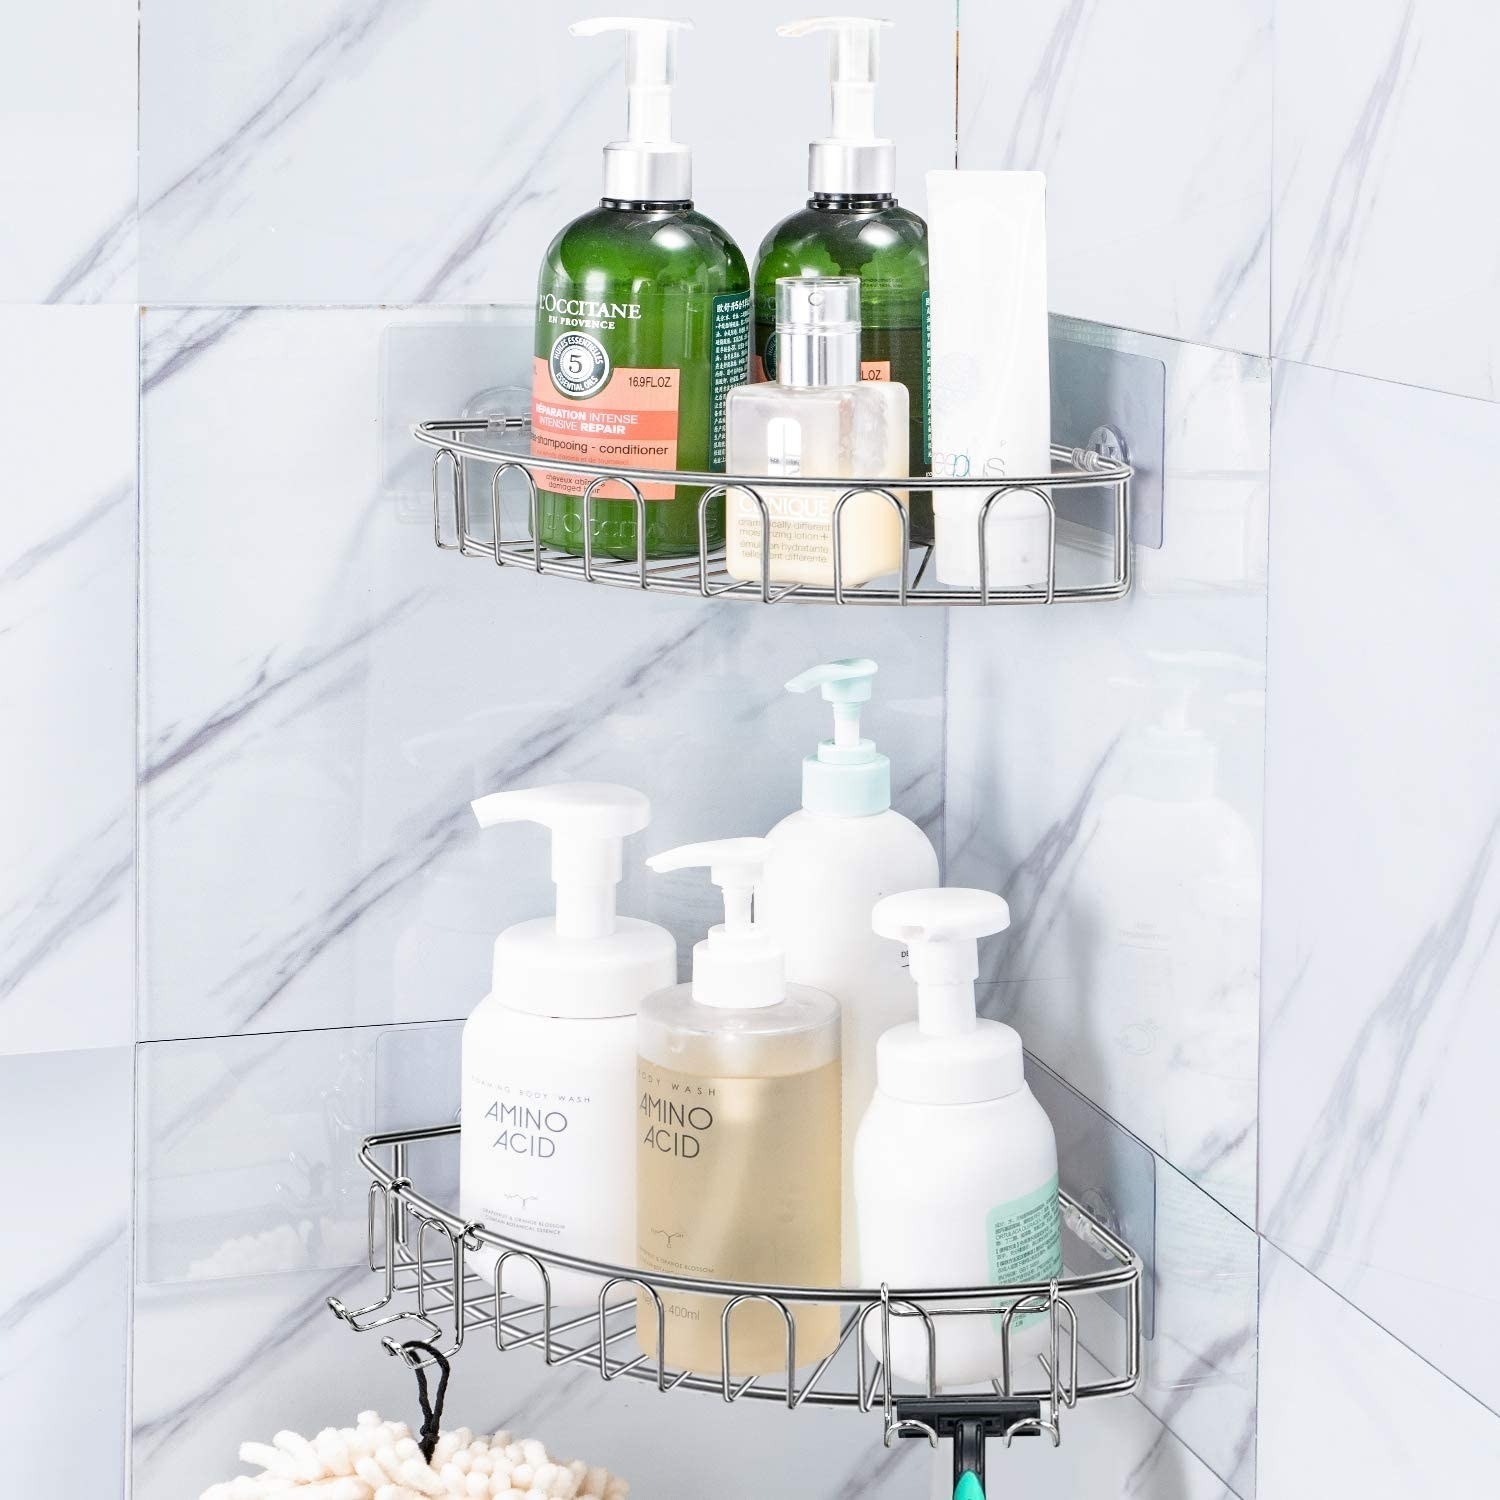 A pair of shower shelves filled with bath products